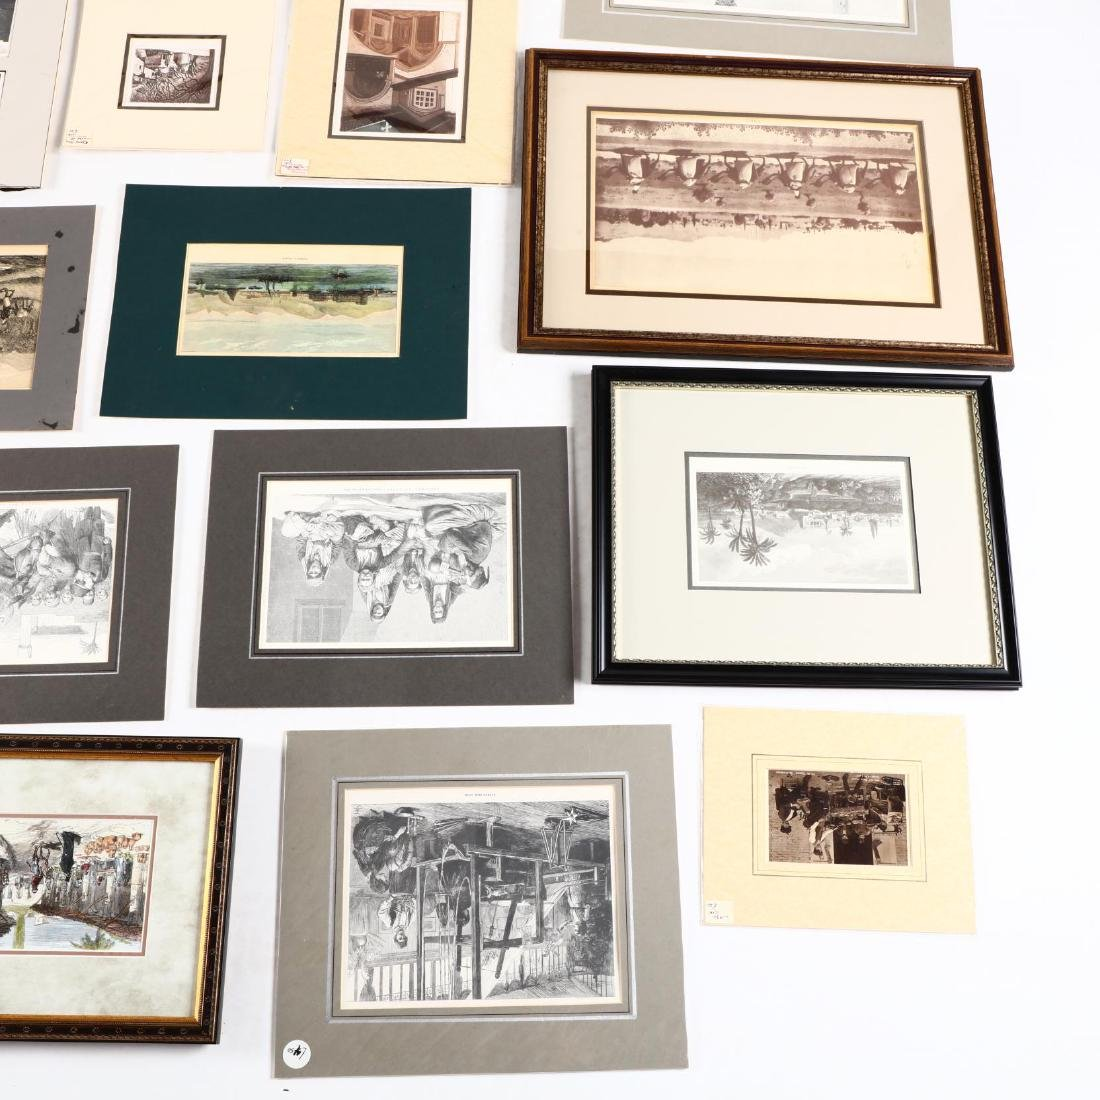 Group of Engravings and Photographs Documenting Old - 5